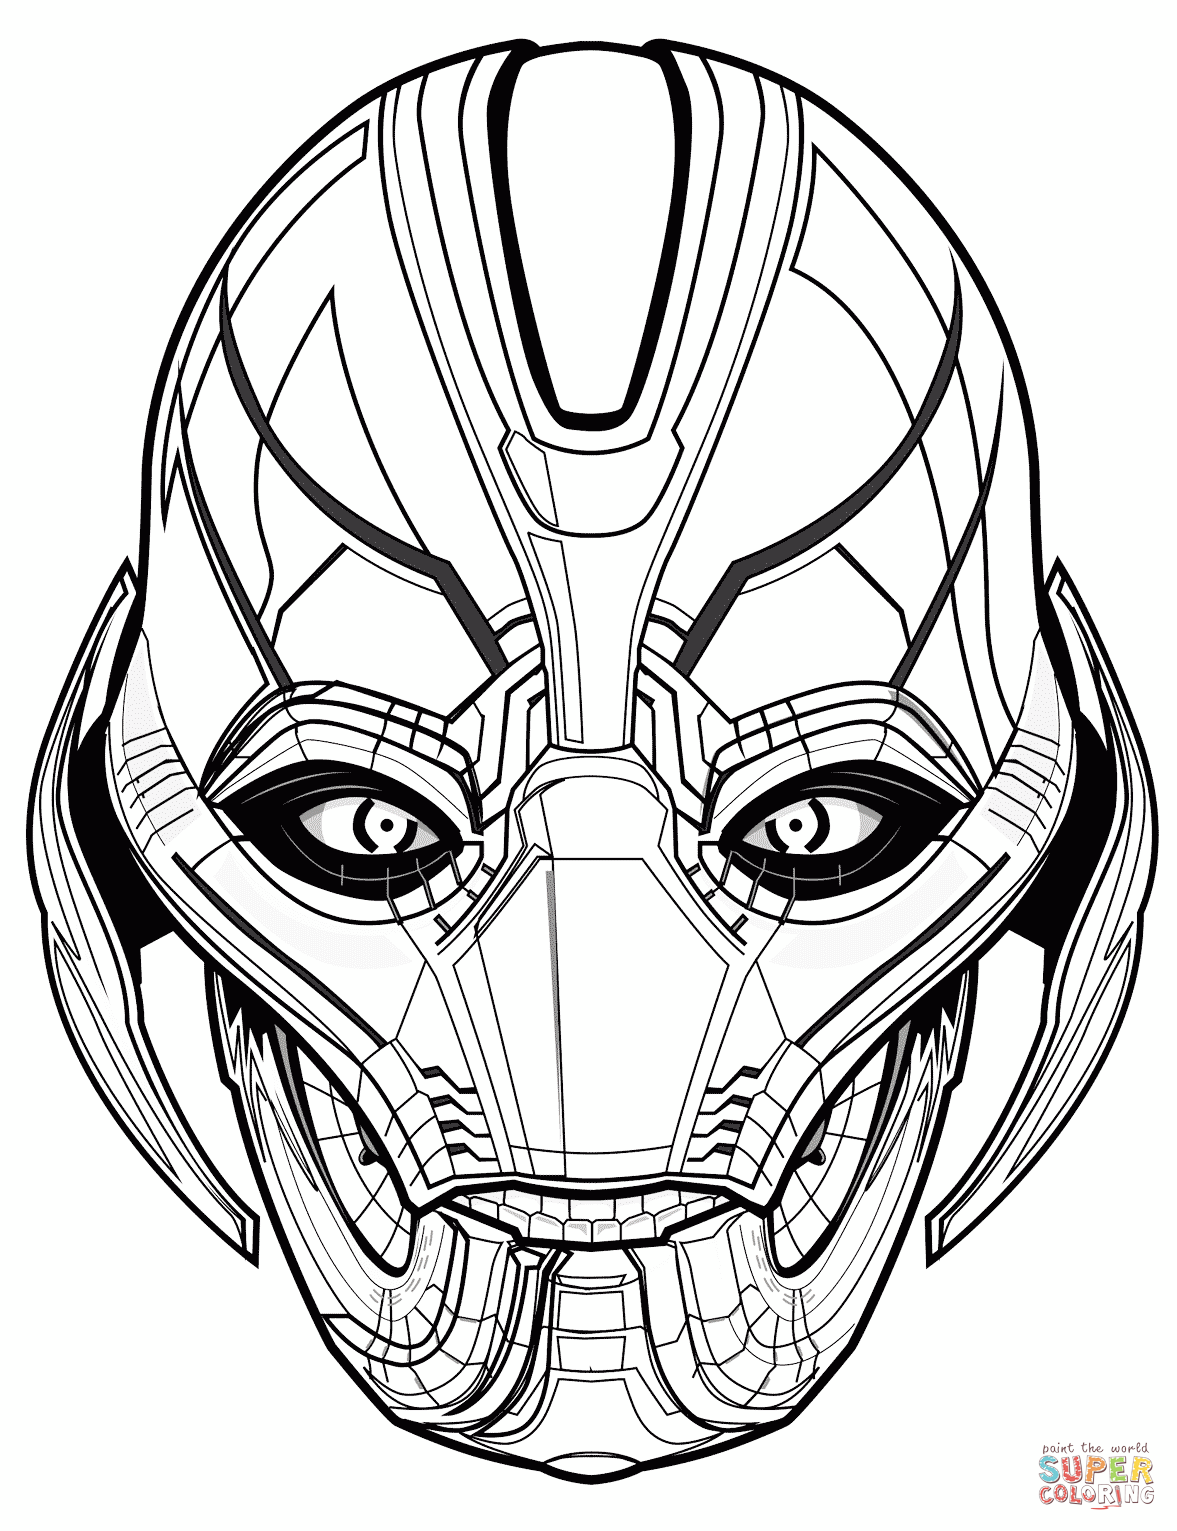 Marvel's The Avengers Coloring Pages